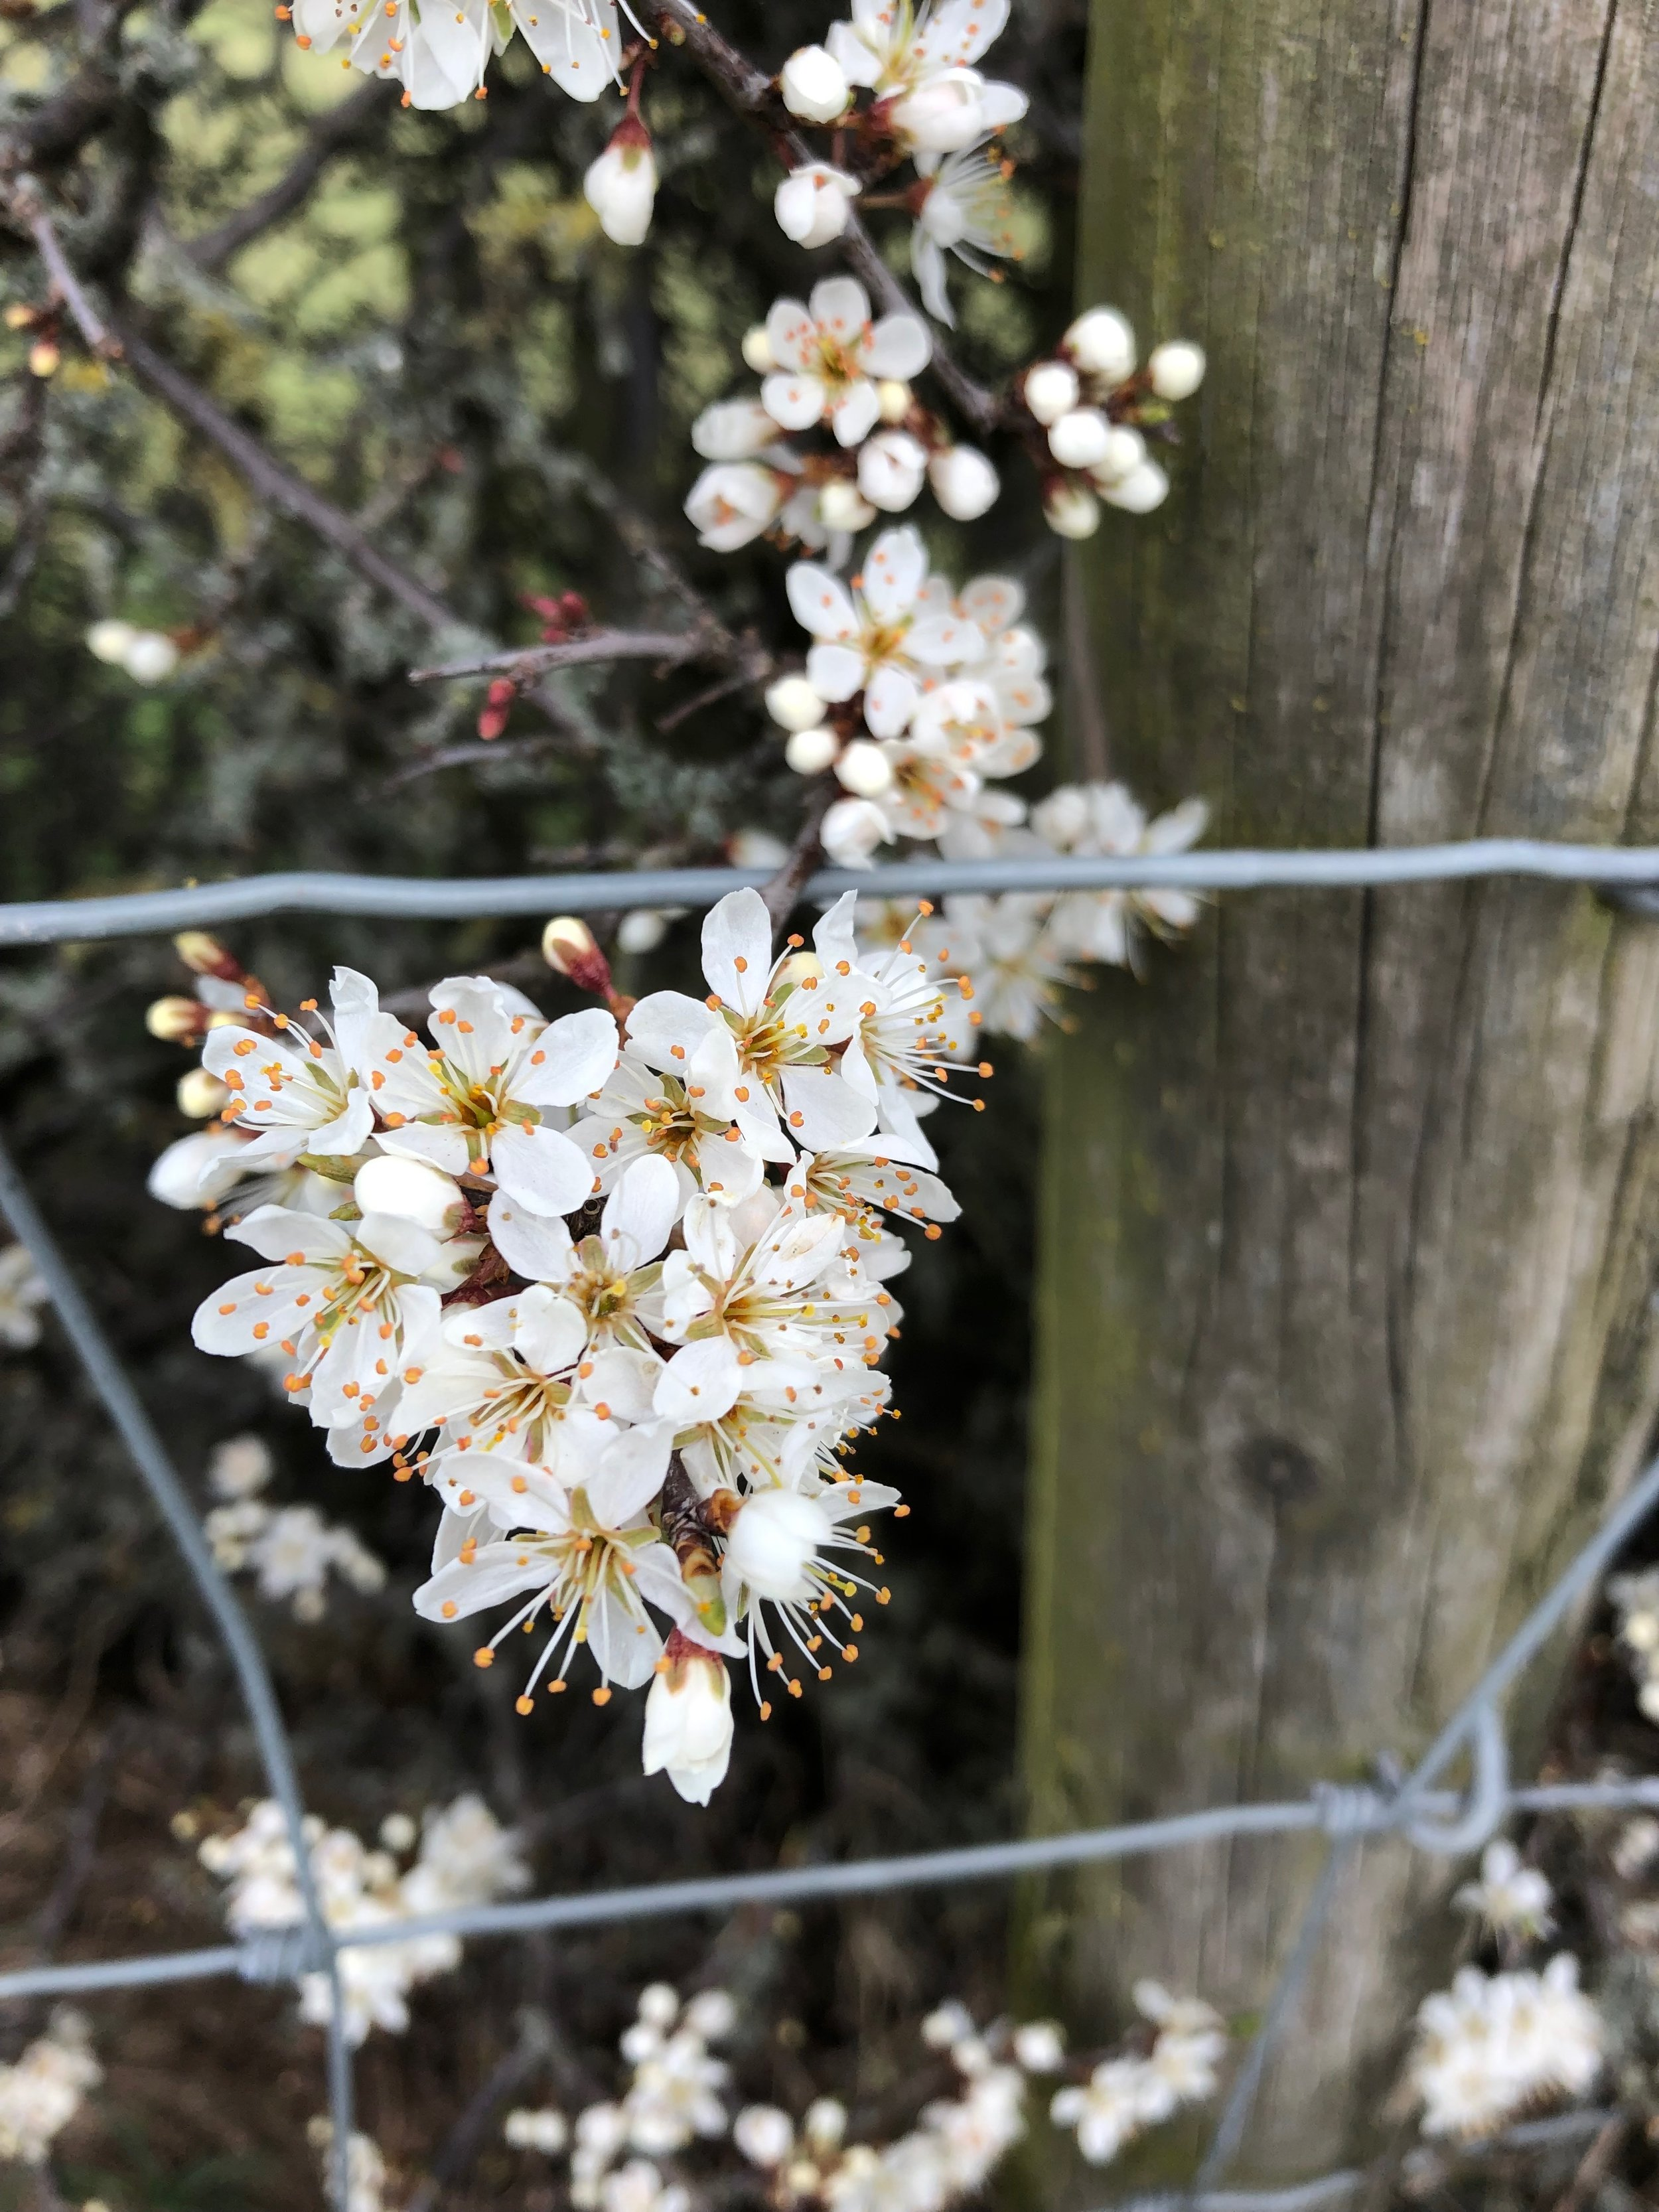 I found this gorgeous blossom. we spent about half an hour taking pictures, it was sheltered from the wind and nice and warm.